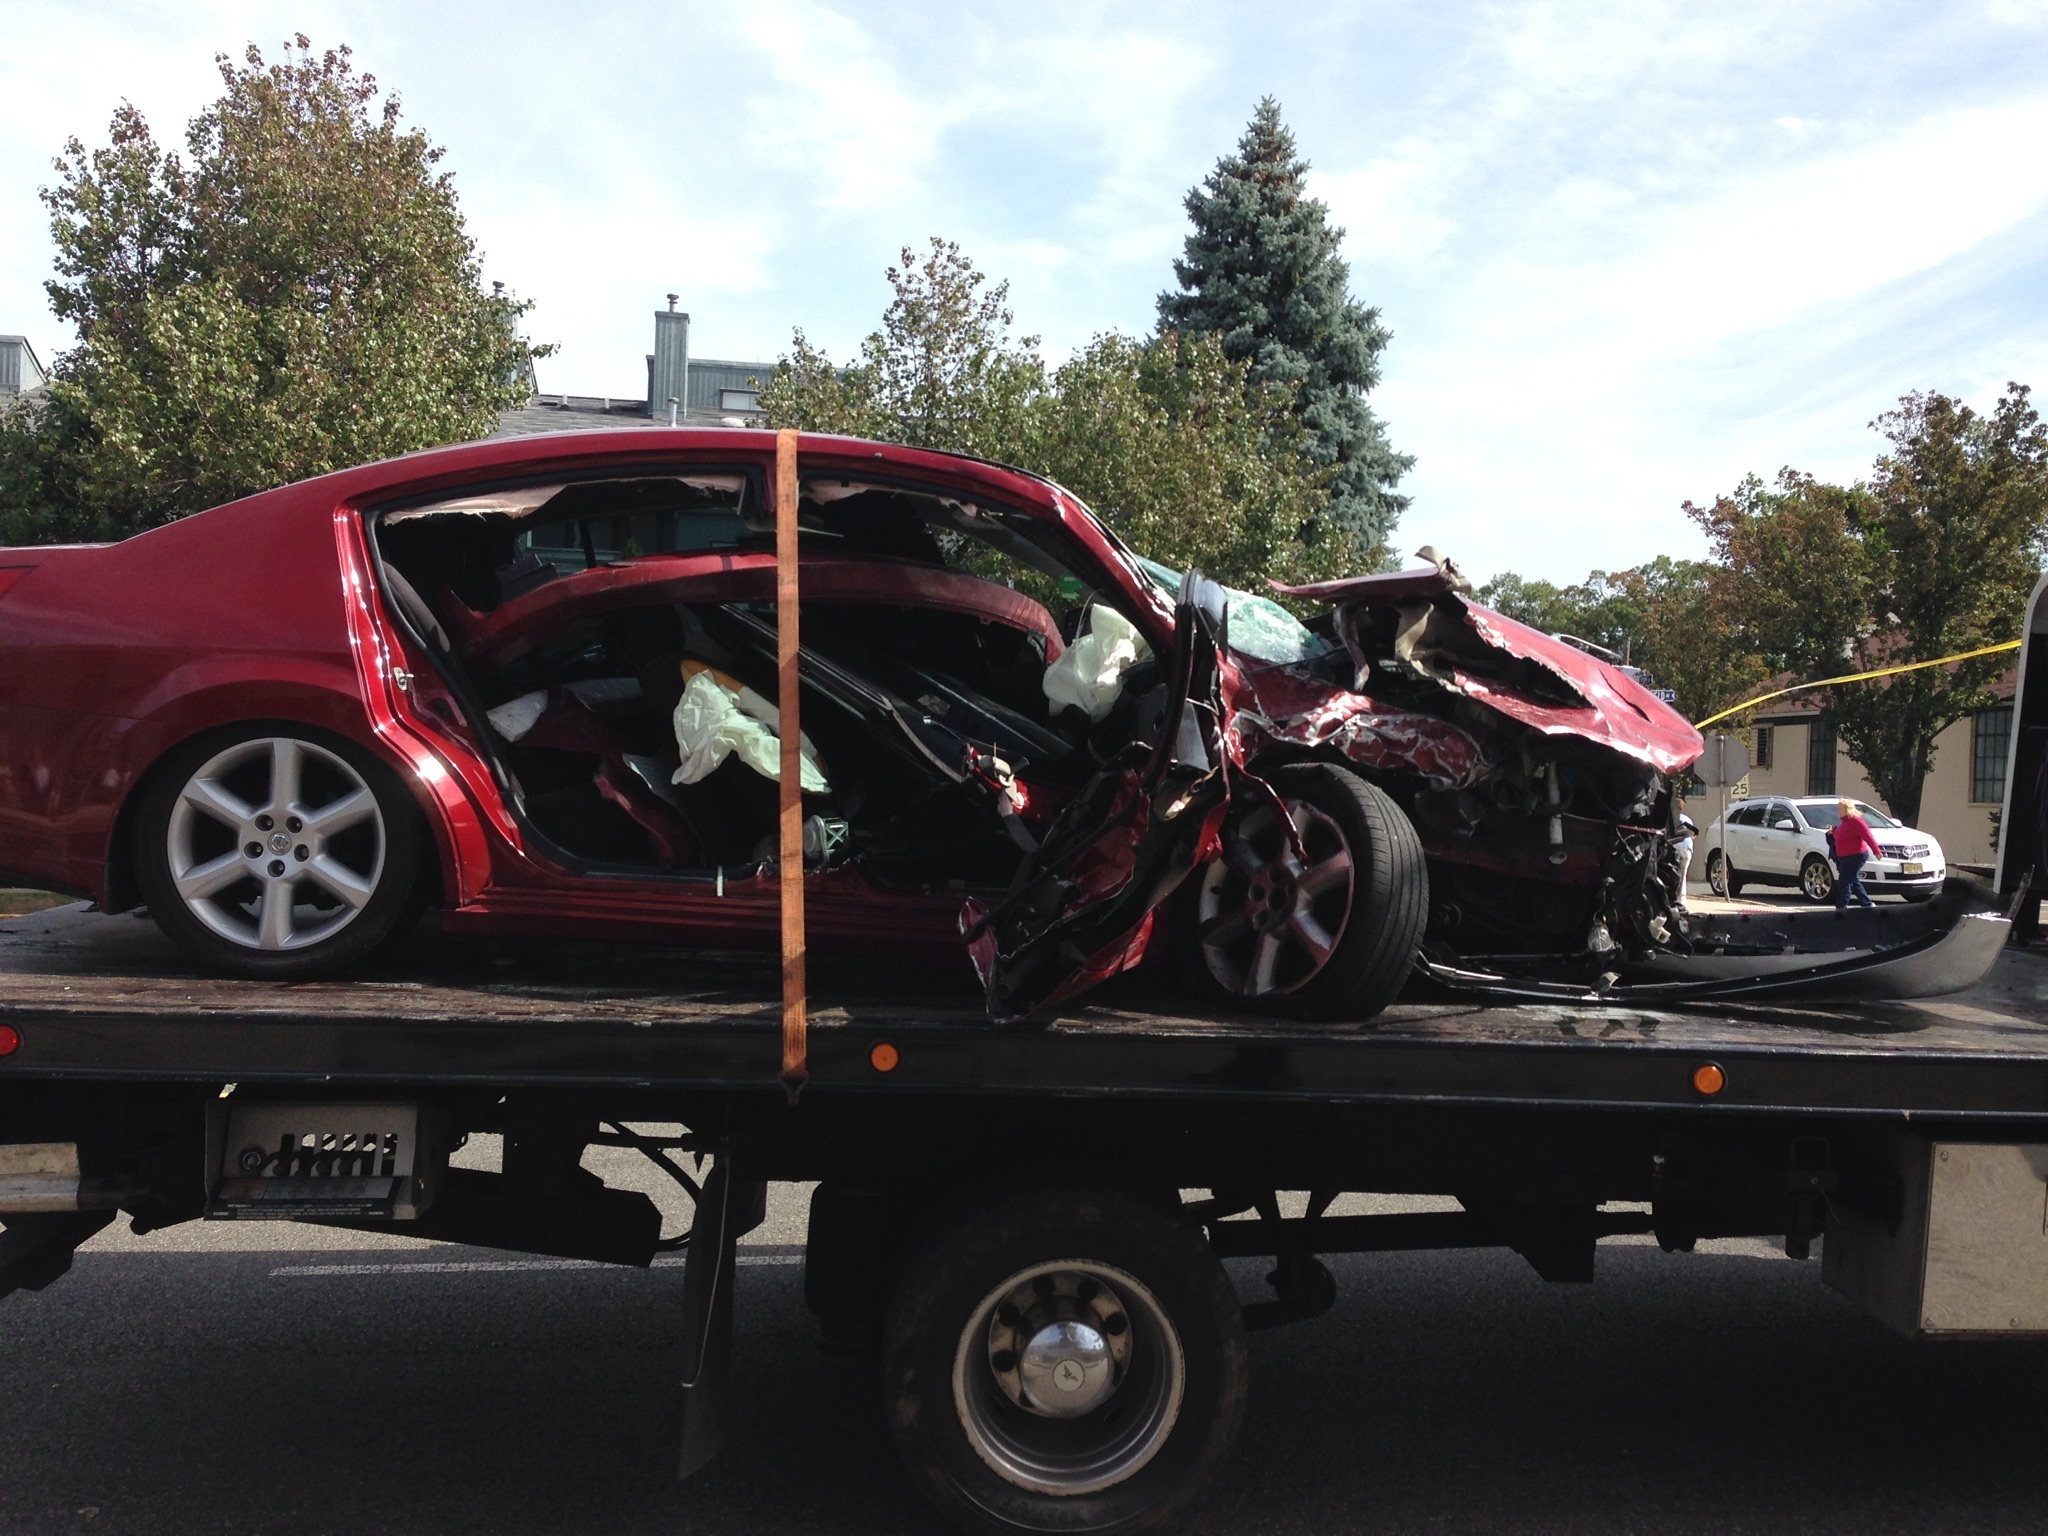 Chapman Ford Eht >> Nj Motor Vehicle Accident Report - impremedia.net